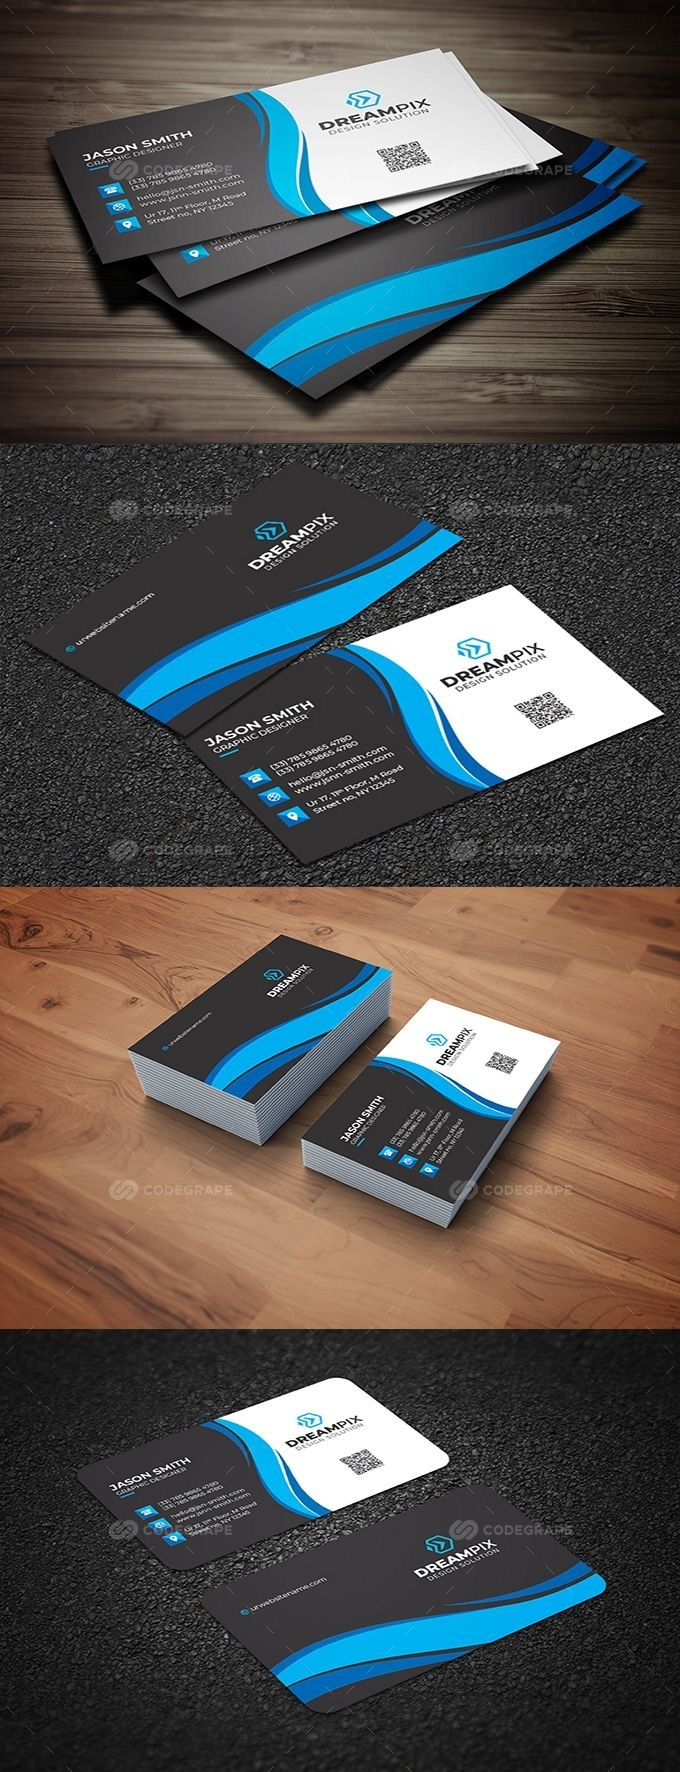 Business Card Printing Business Cards Business Cards Printed Cards